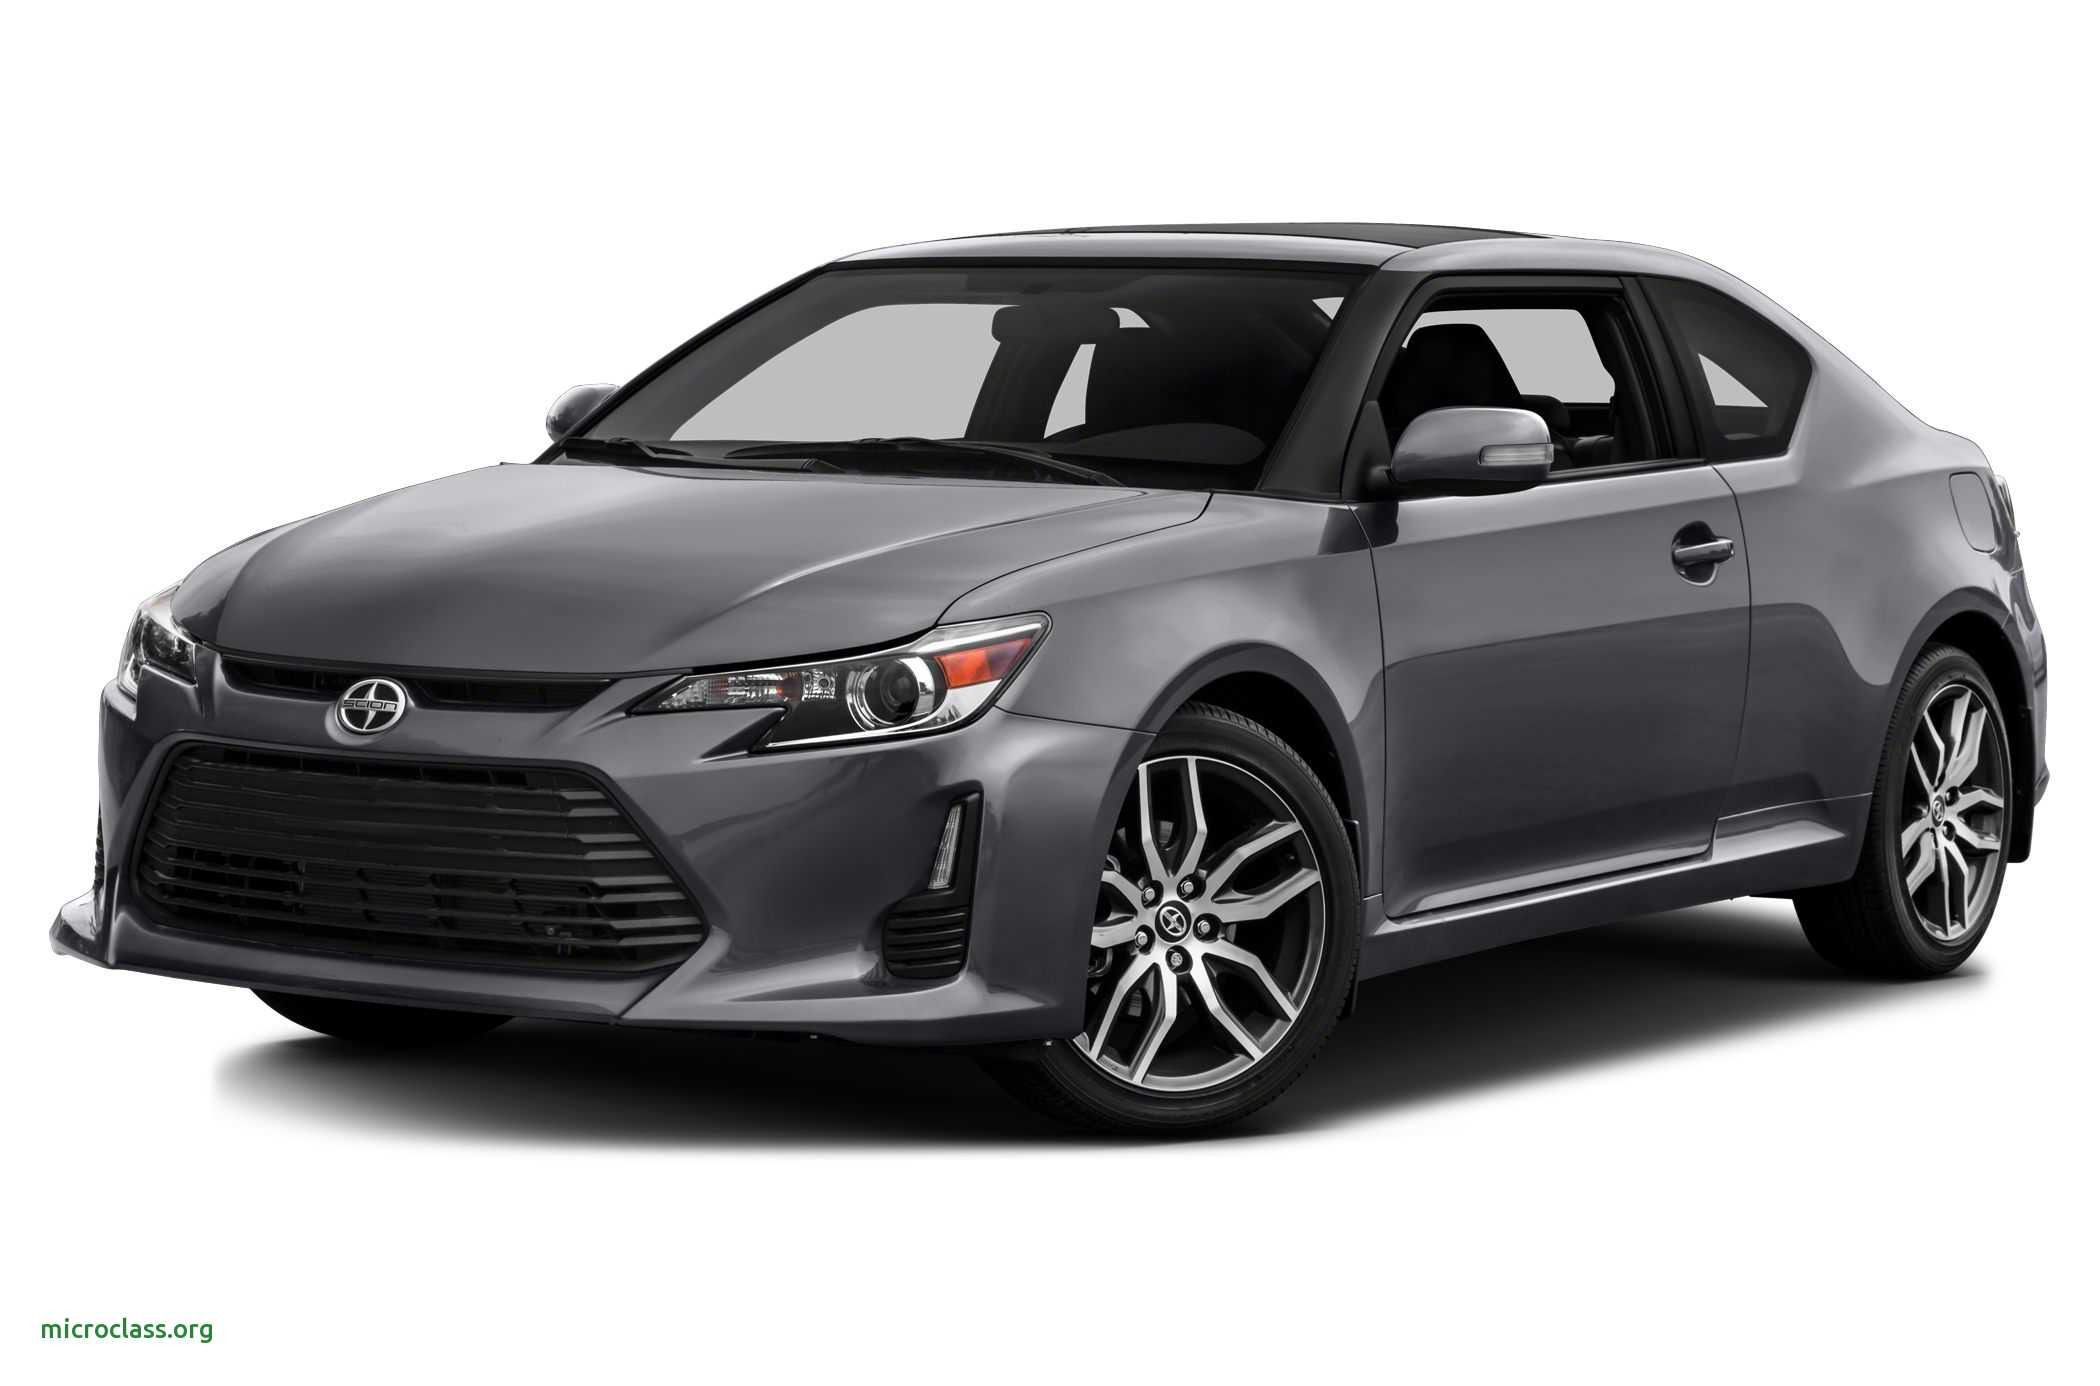 27 The Best 2020 Scion Tced Pictures